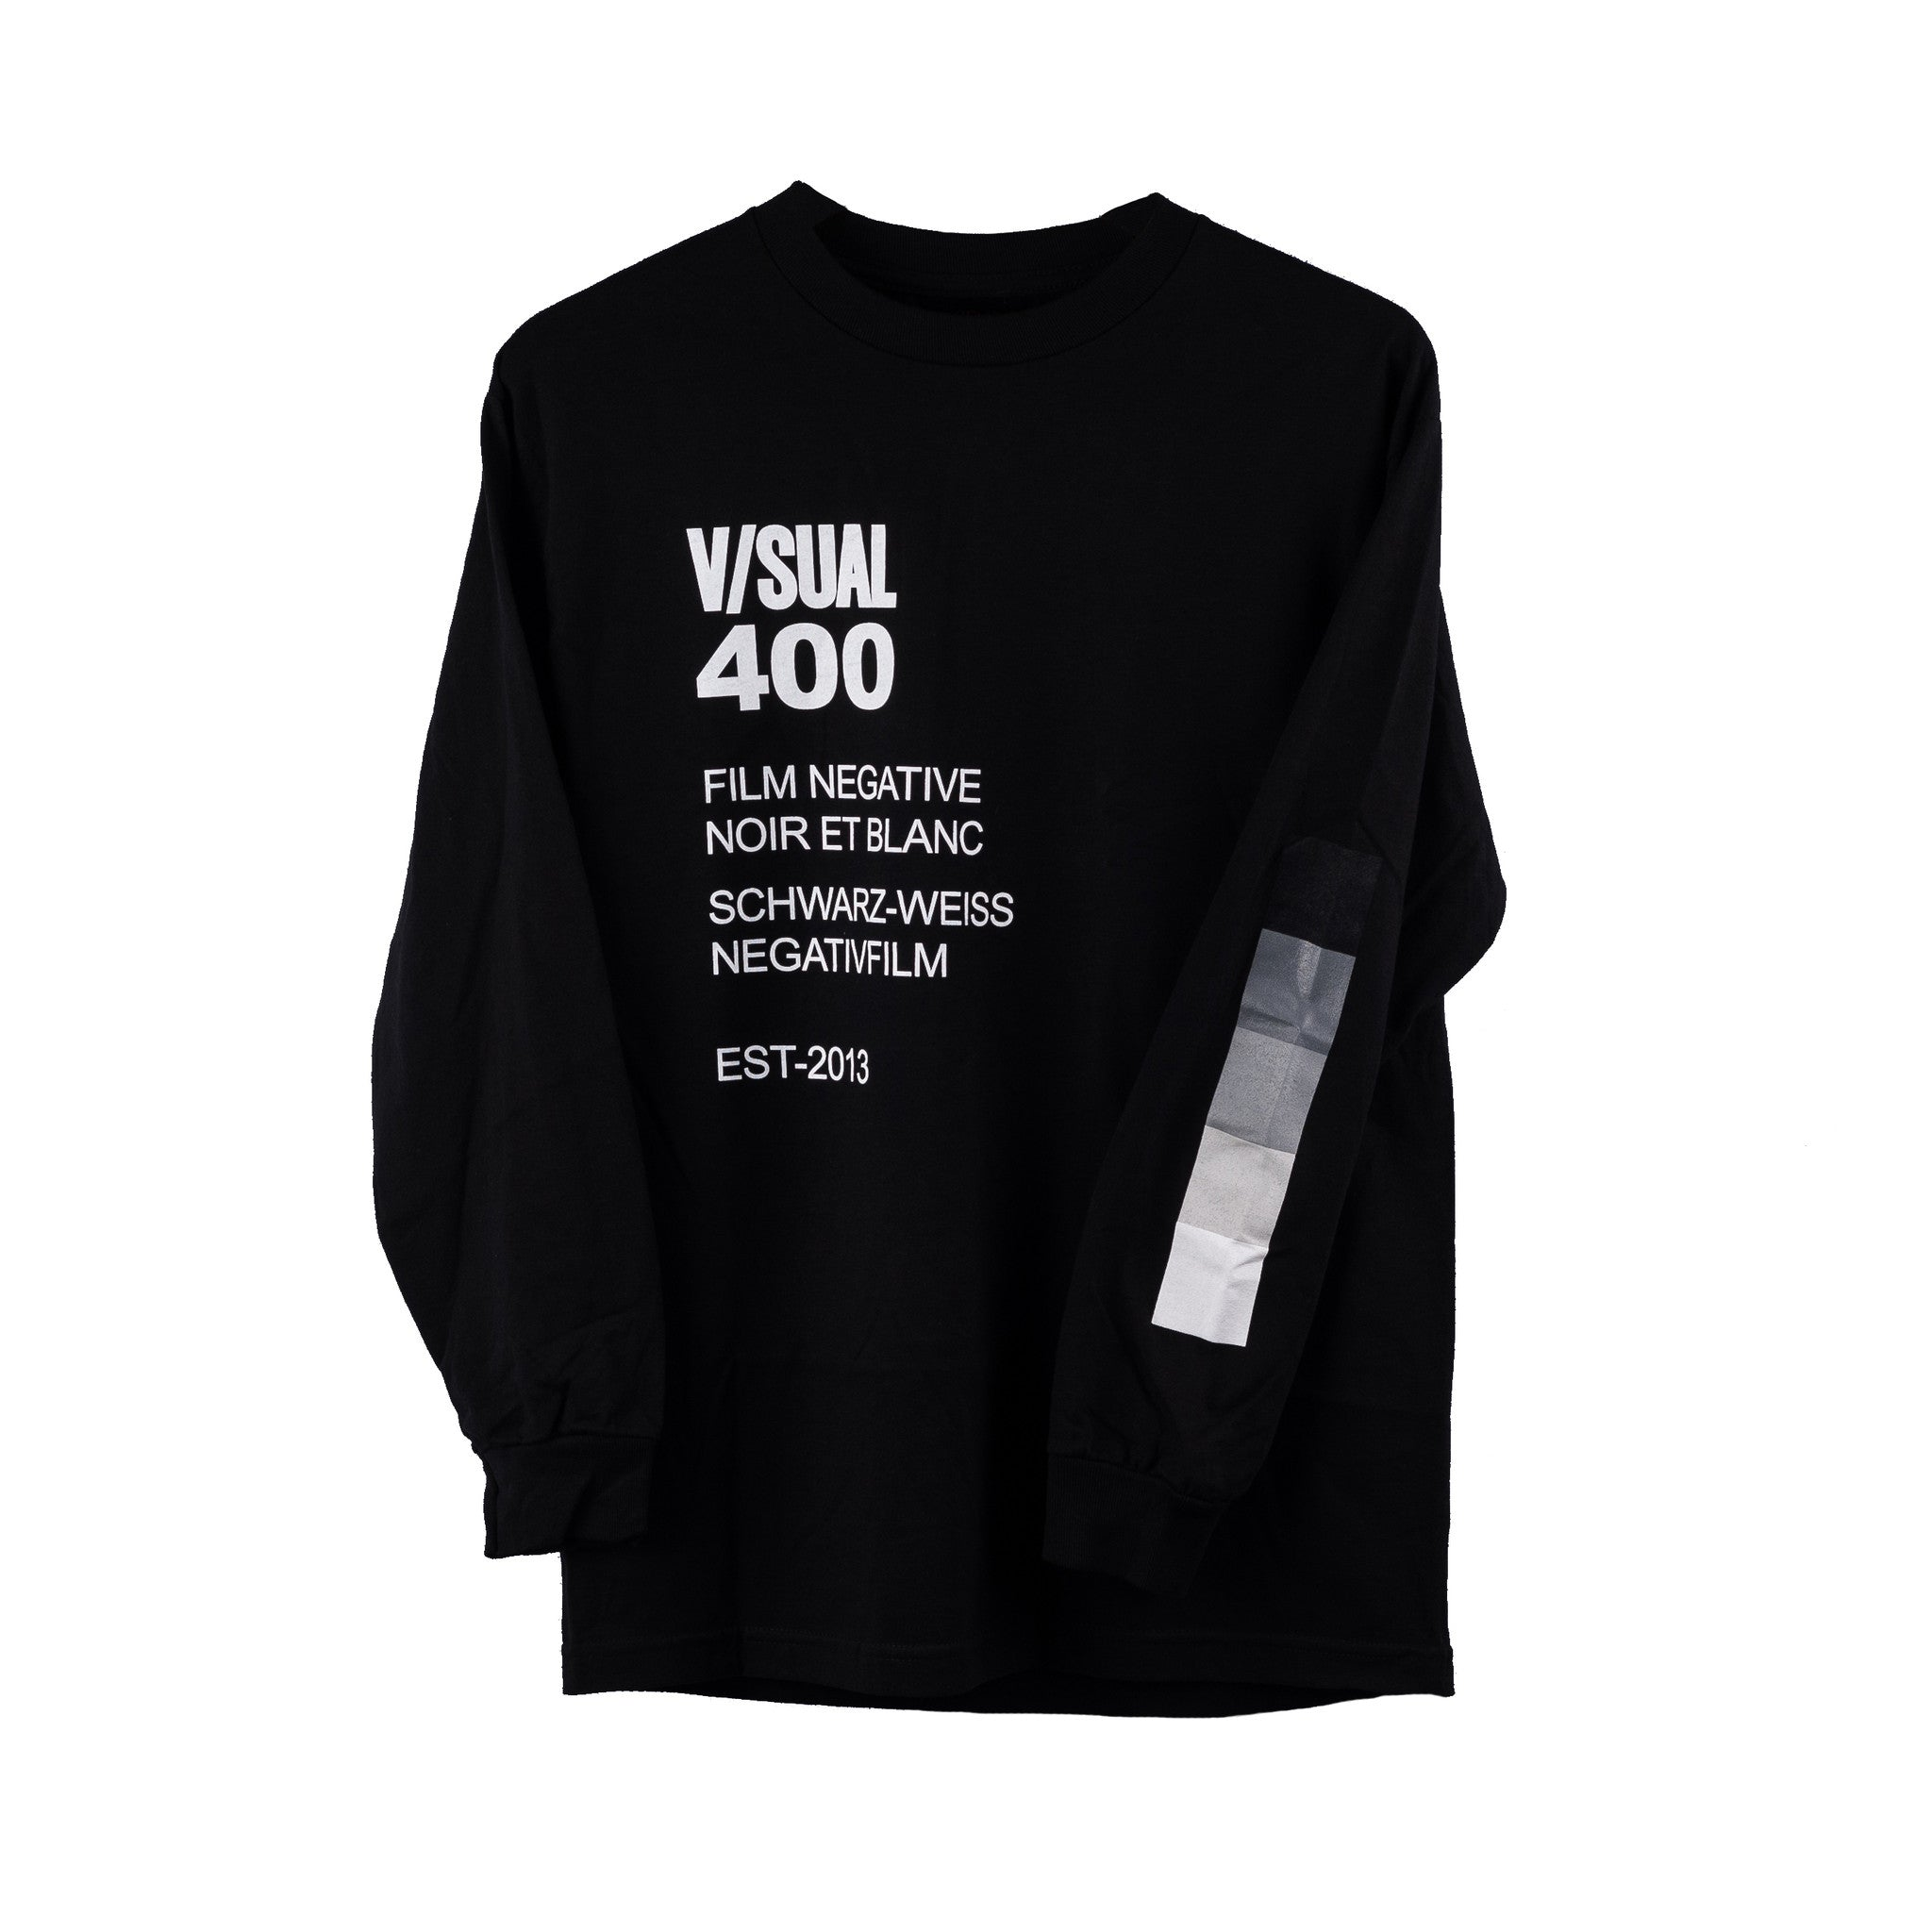 V/SUAL Negative Long Sleeve Tee, Black, Small